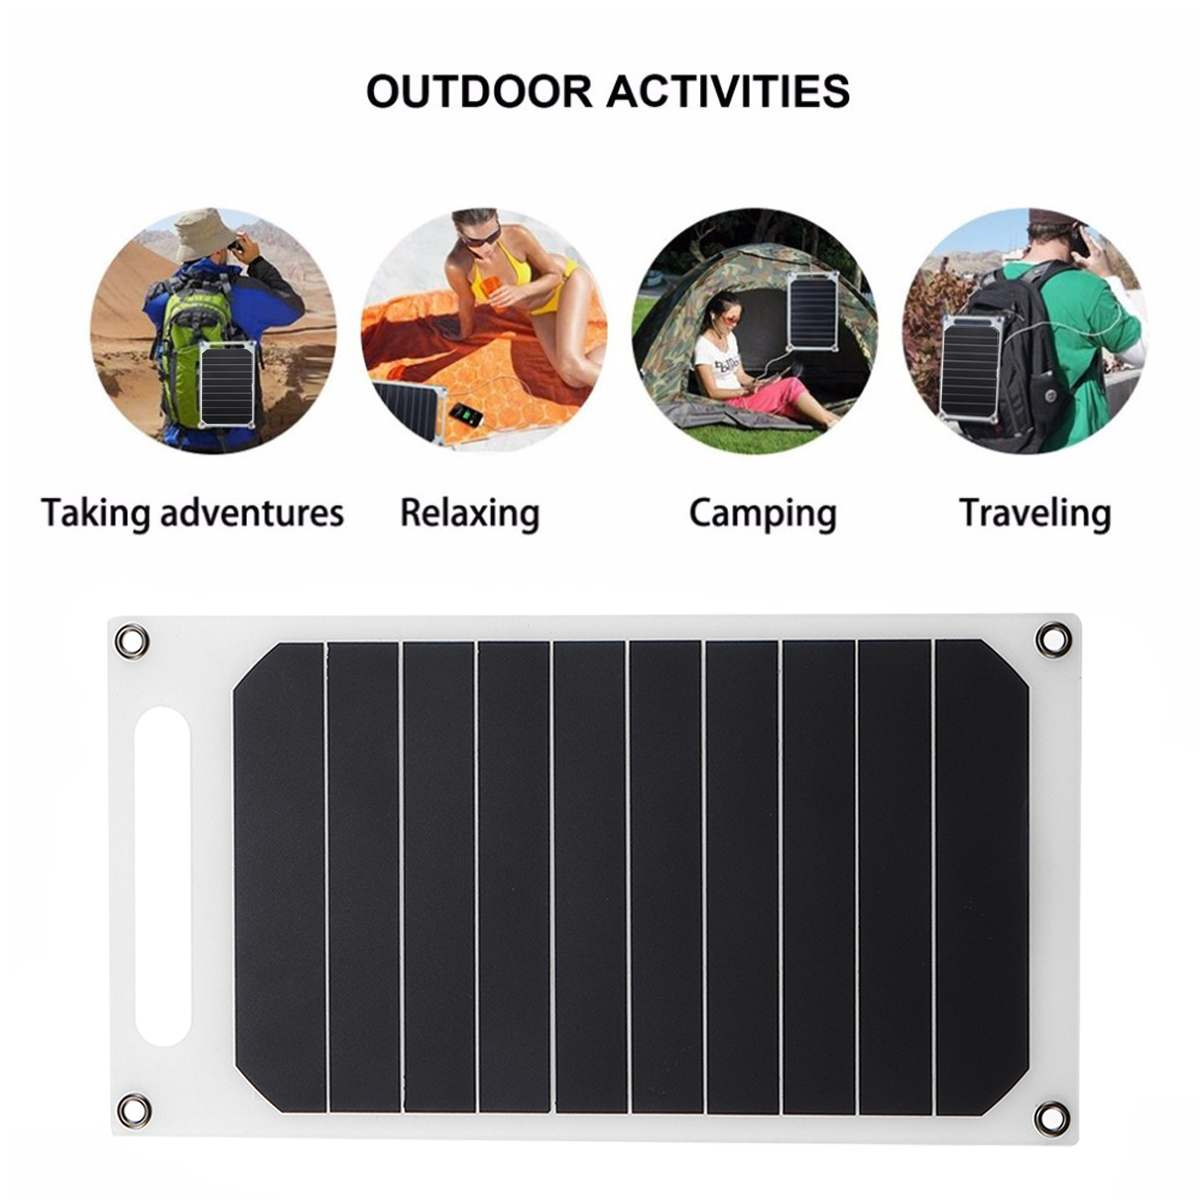 LEORY <font><b>5V</b></font> <font><b>10W</b></font> DIY Portable <font><b>Solar</b></font> <font><b>Panel</b></font> Slim Light USB Charger Charging Power Bank Pad Universal For Phone Lighting Car Charger image